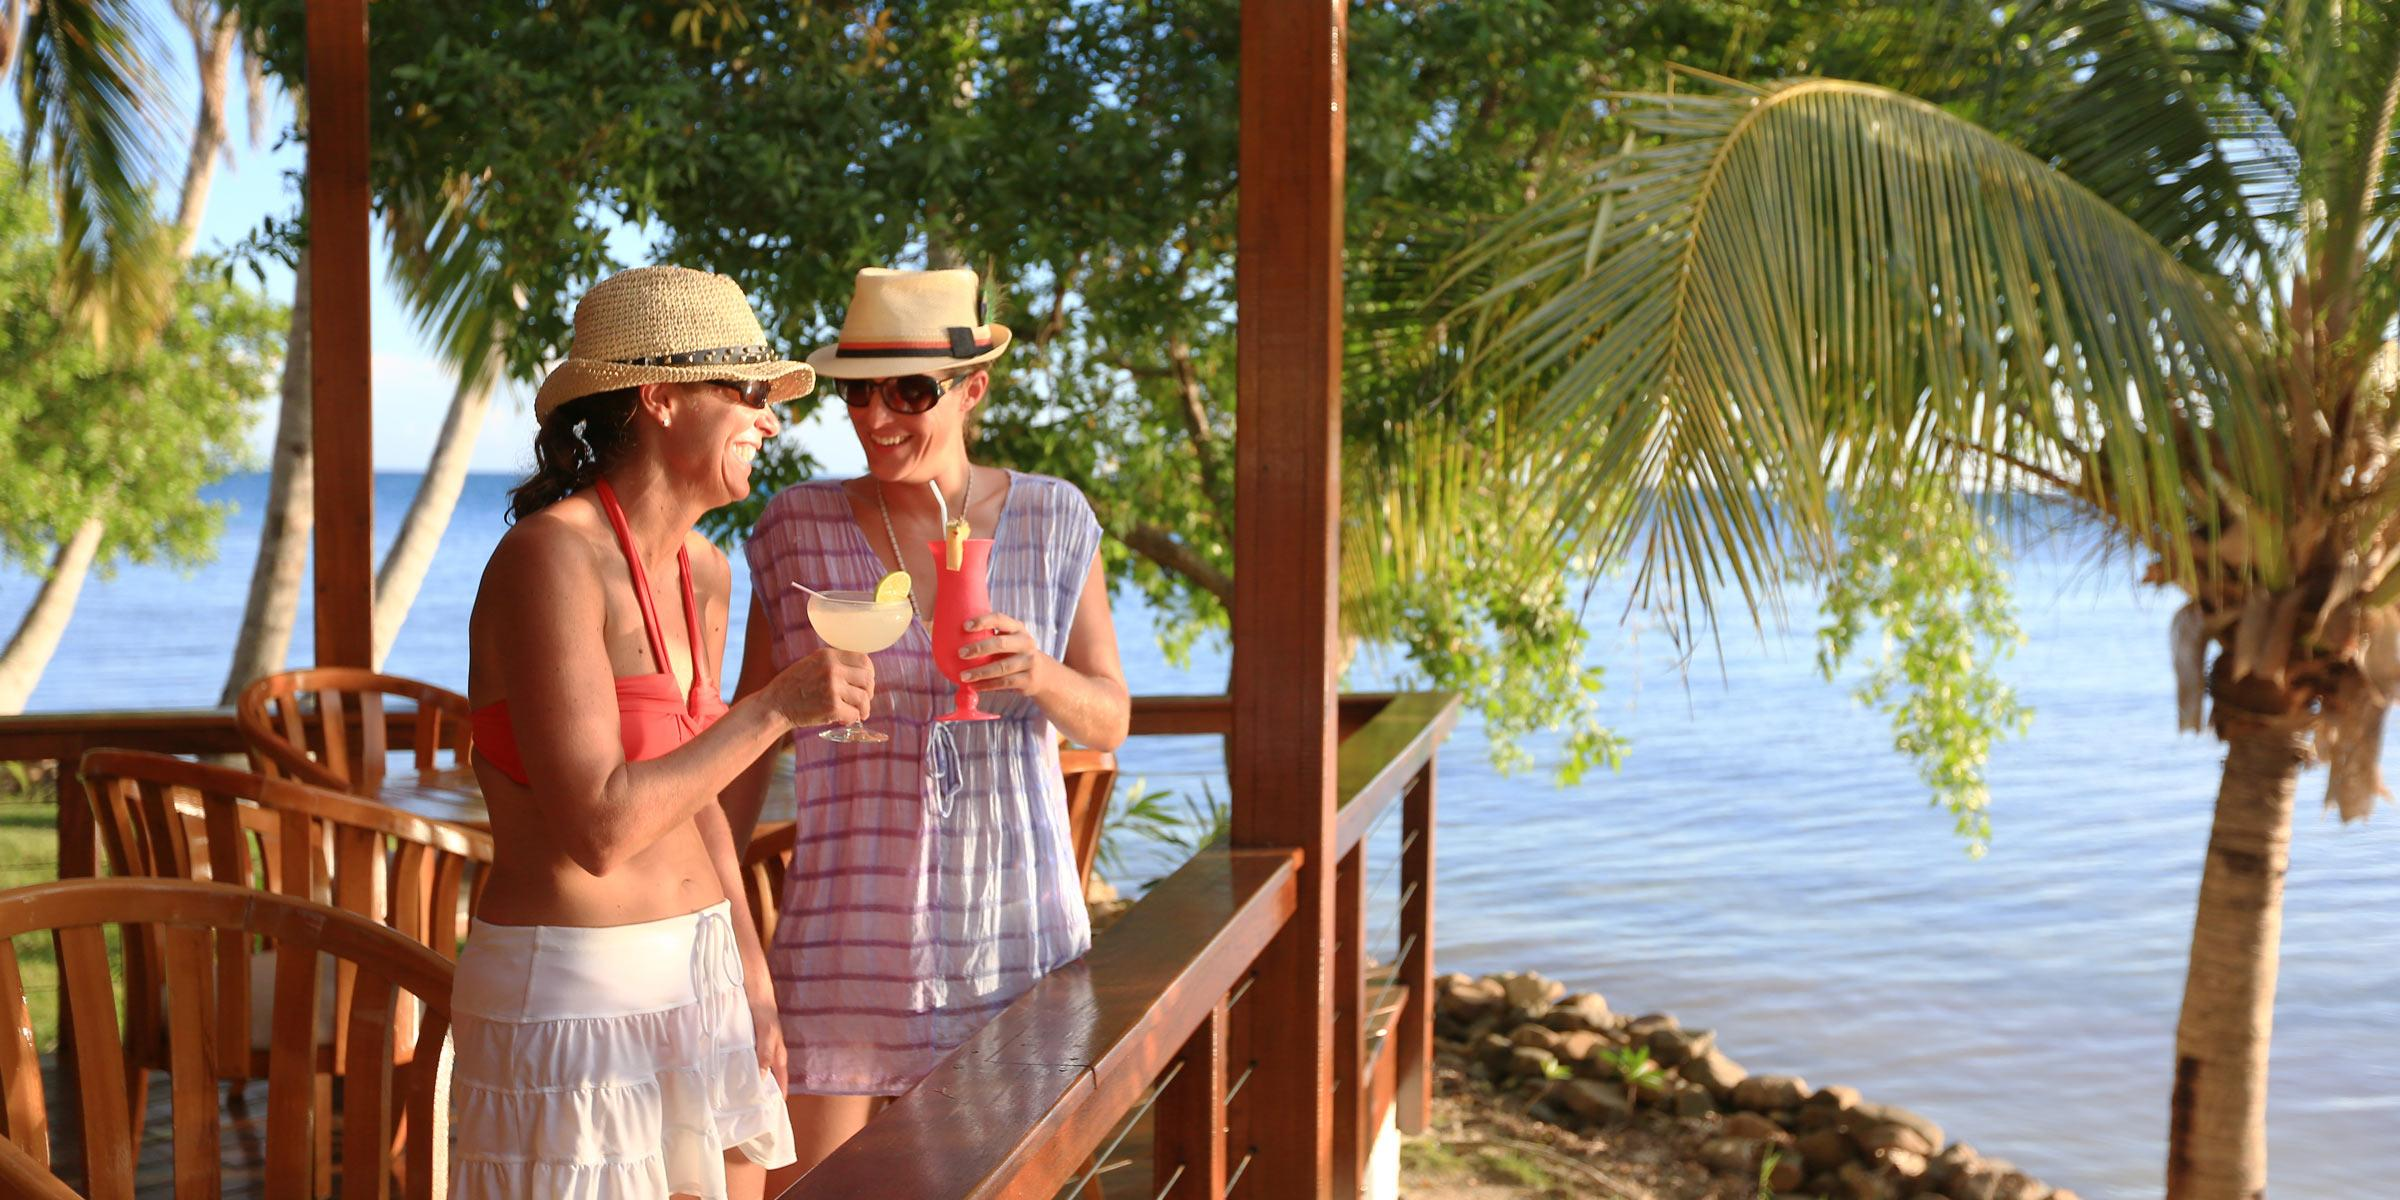 Drinks and fun at Hachet Cay Belize